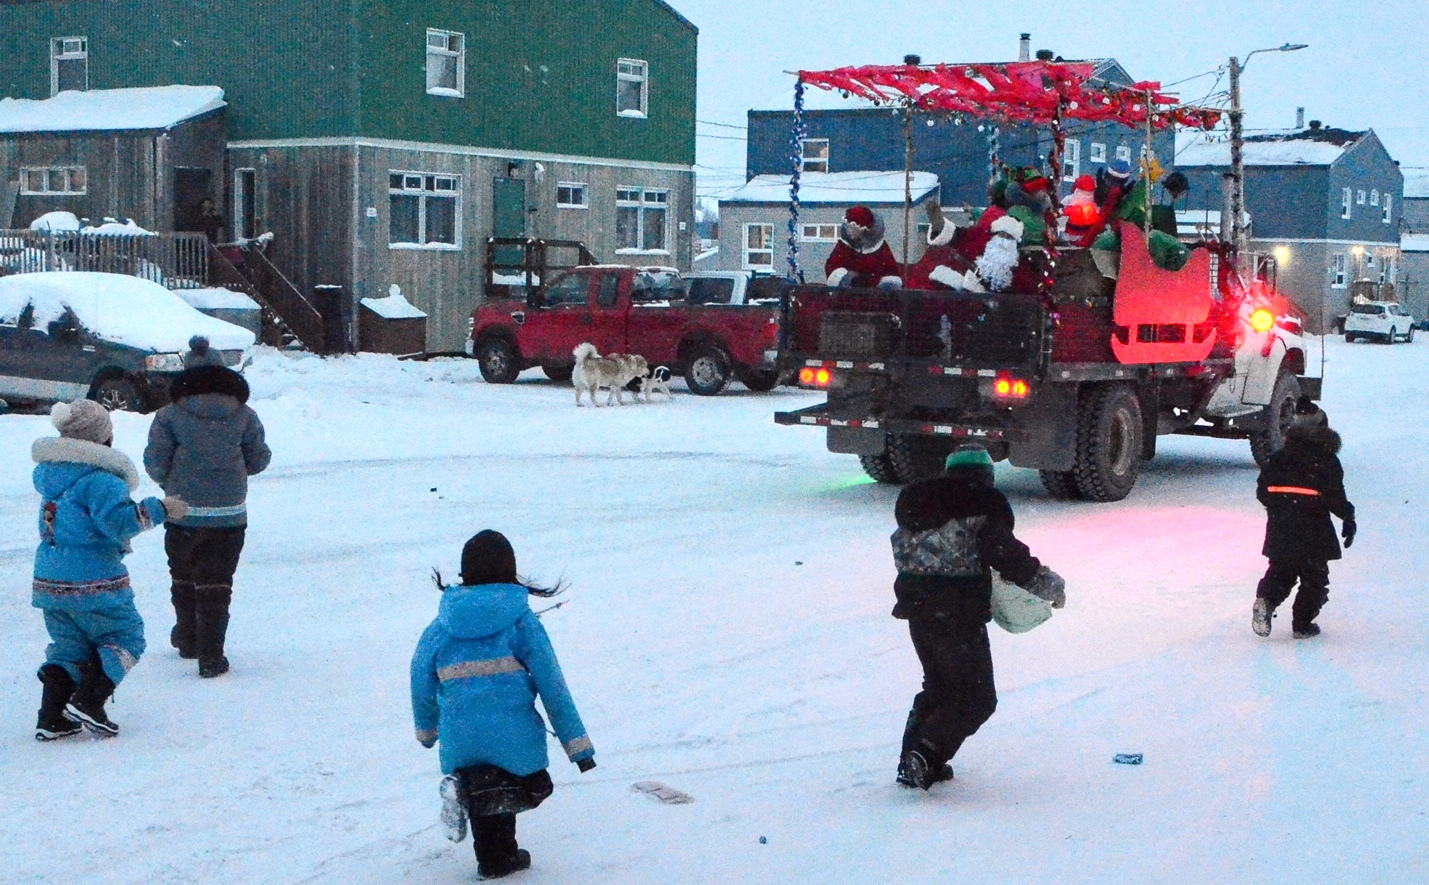 Santa Claus and his helpers distribute candies and other presents — such as hats, gloves and mitts — during a tour around Kuujjuaq on a municipal flat bed truck dubbed Rudolph on Sunday, Dec. 20. (Photo by Isabelle Dubois)